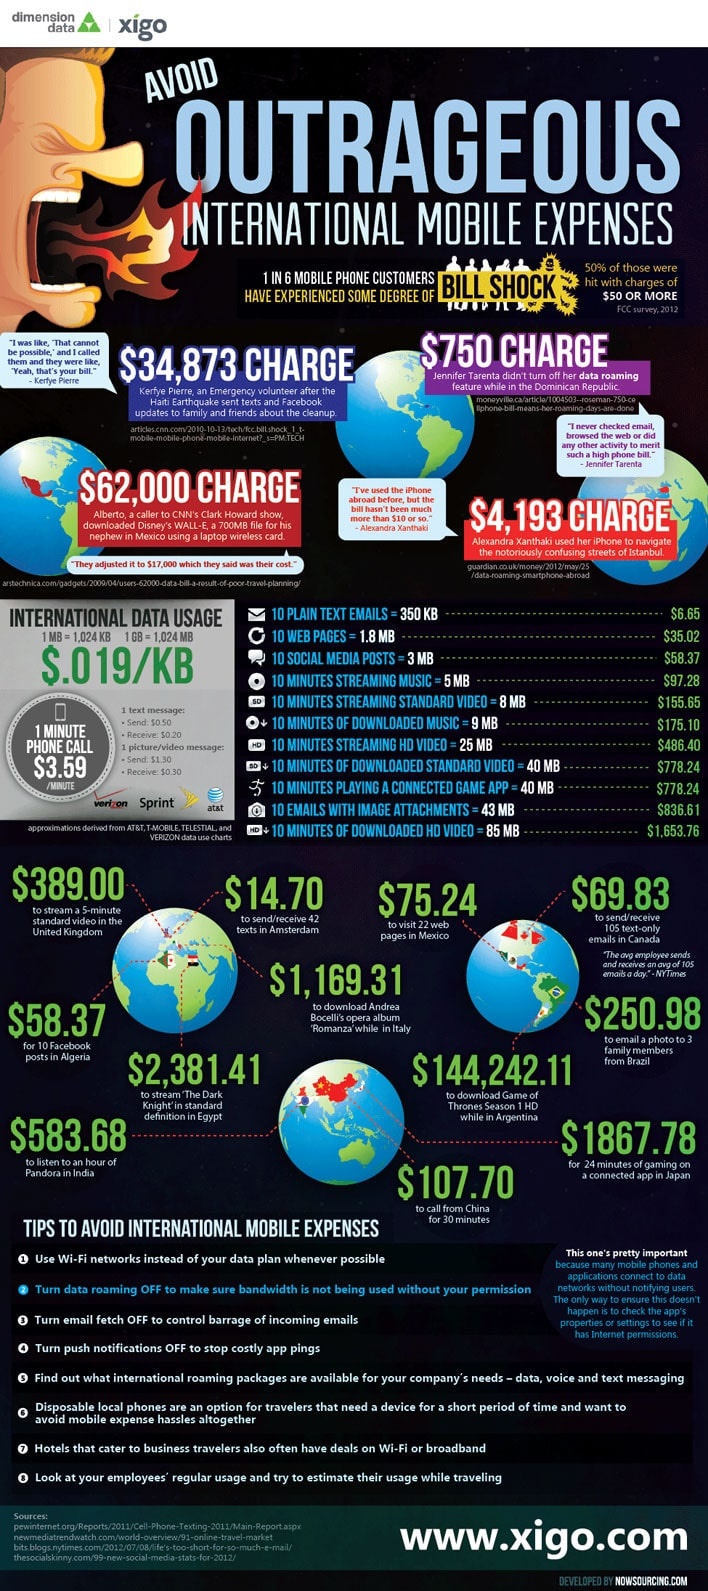 8 Tips To Avoid Outrageous International Mobile Charges [Infographic]